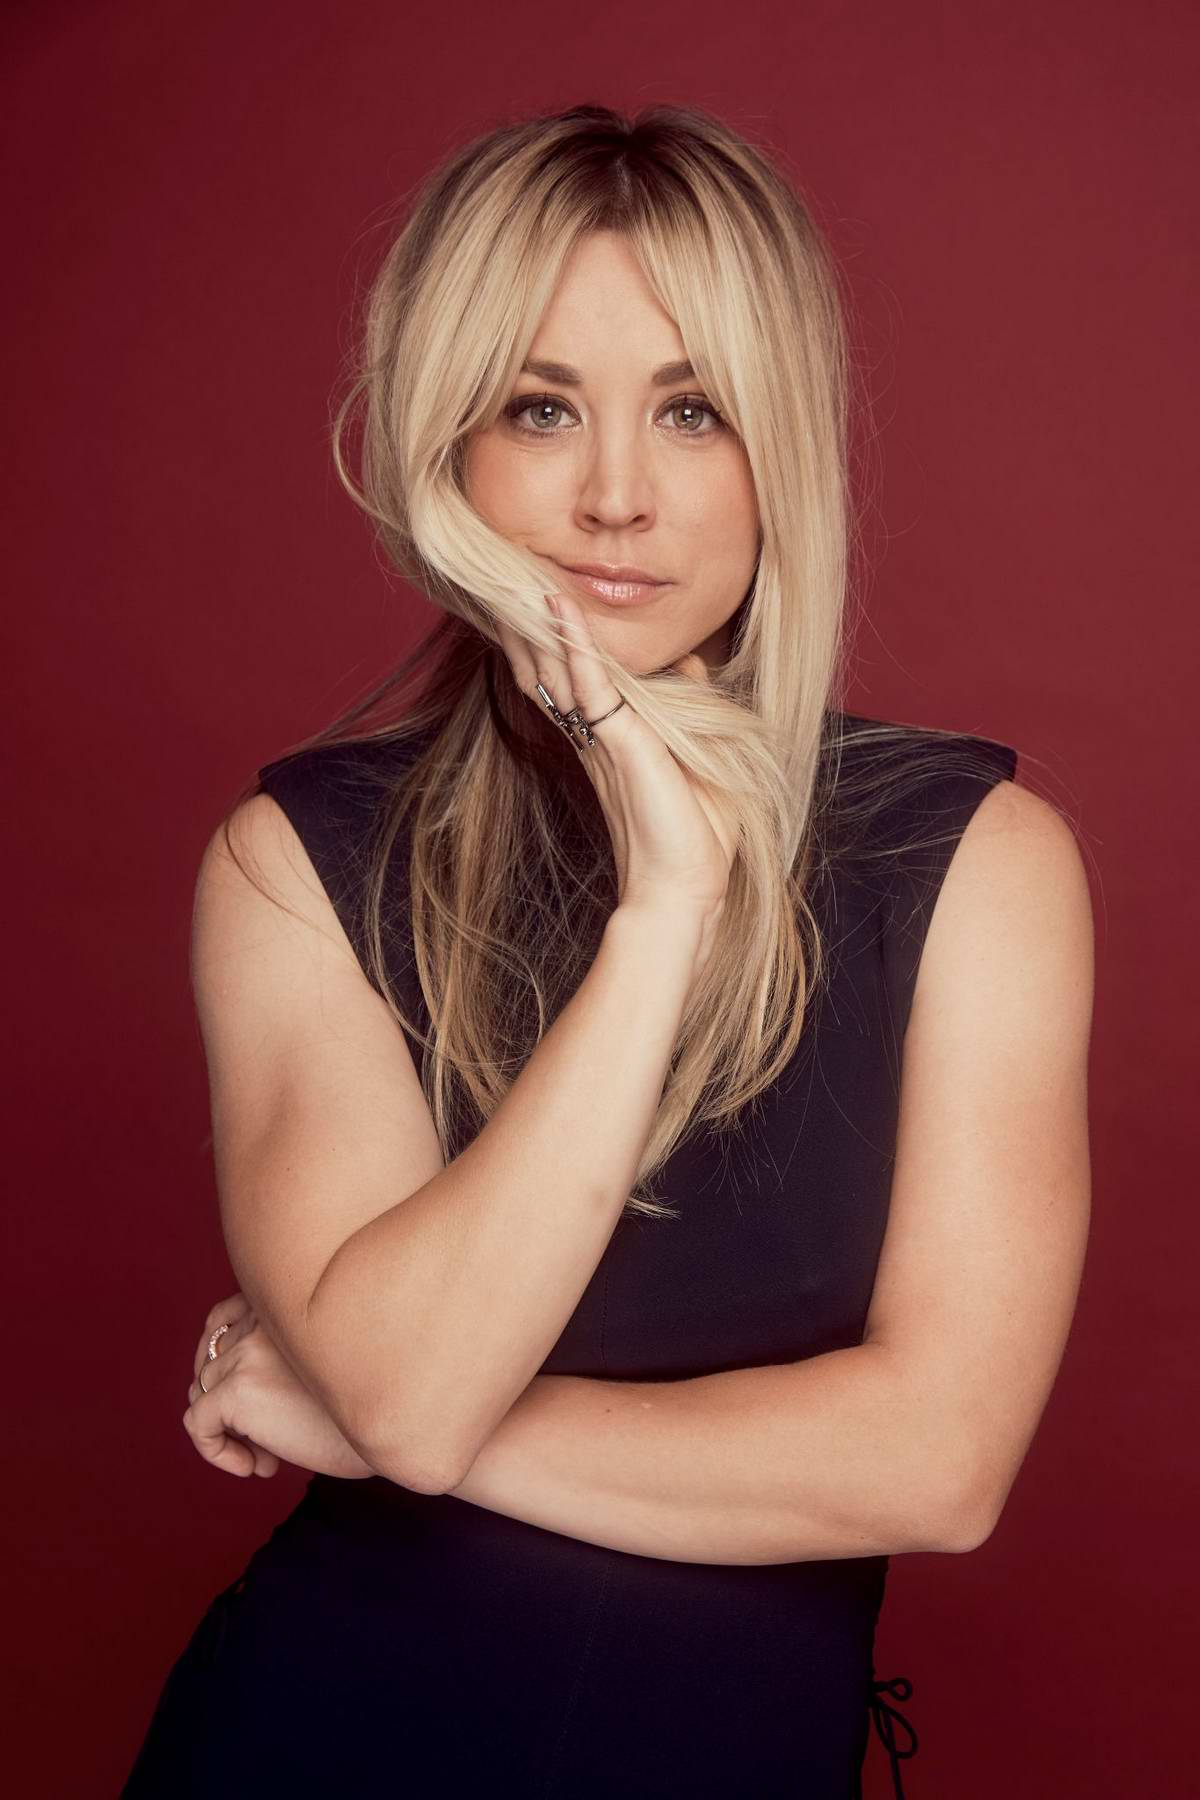 Kaley Cuoco poses during the 2019 Summer TCA Portrait Studio at The Beverly Hilton Hotel in Beverly Hills, Los Angeles